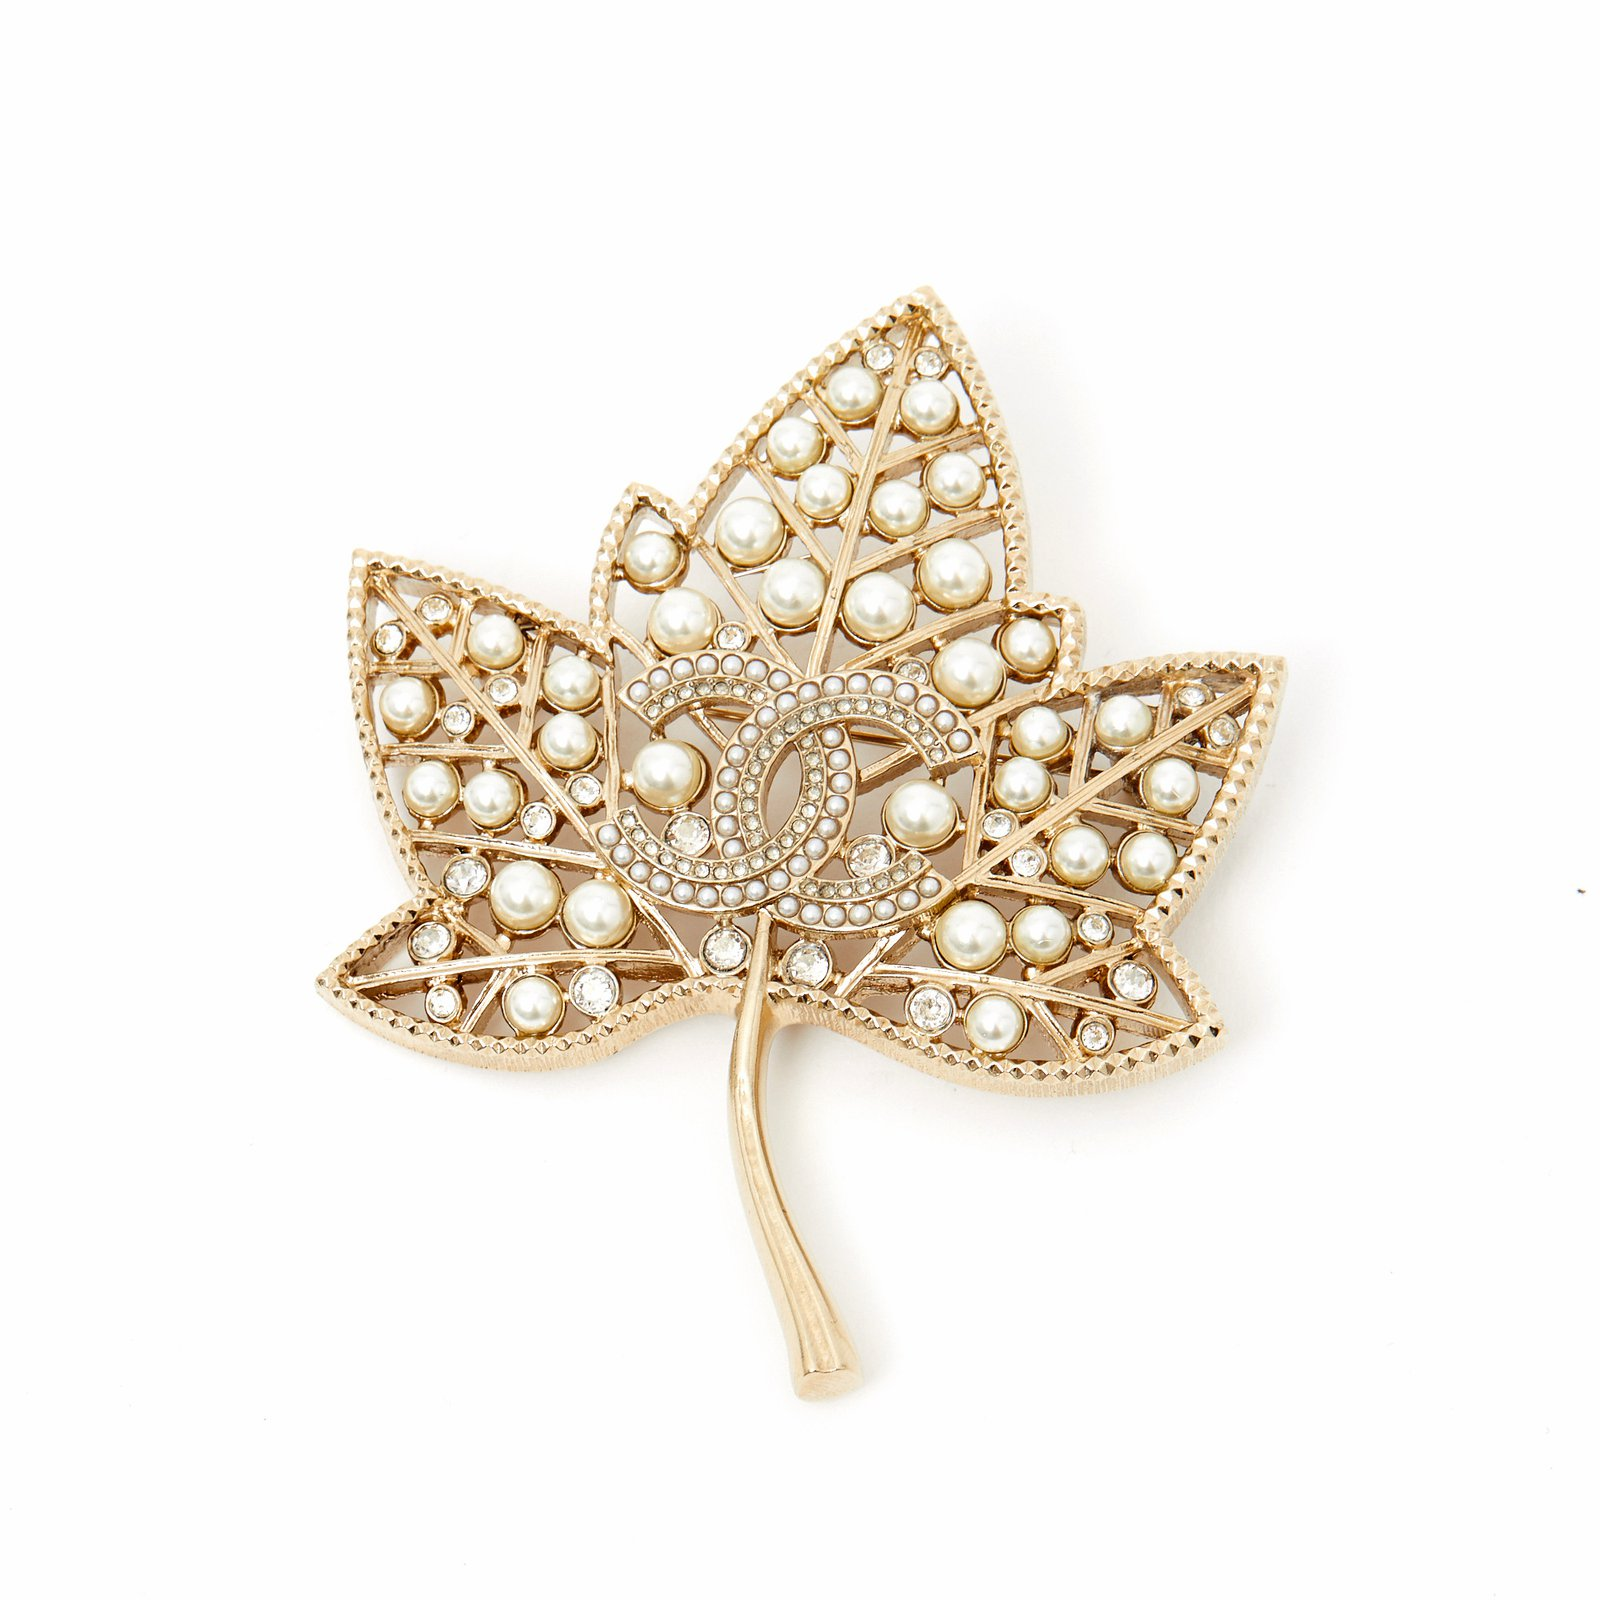 1621cd019 Chanel MAPLE LEAF 2019 Pins & brooches Metal Golden ref.107730 ...